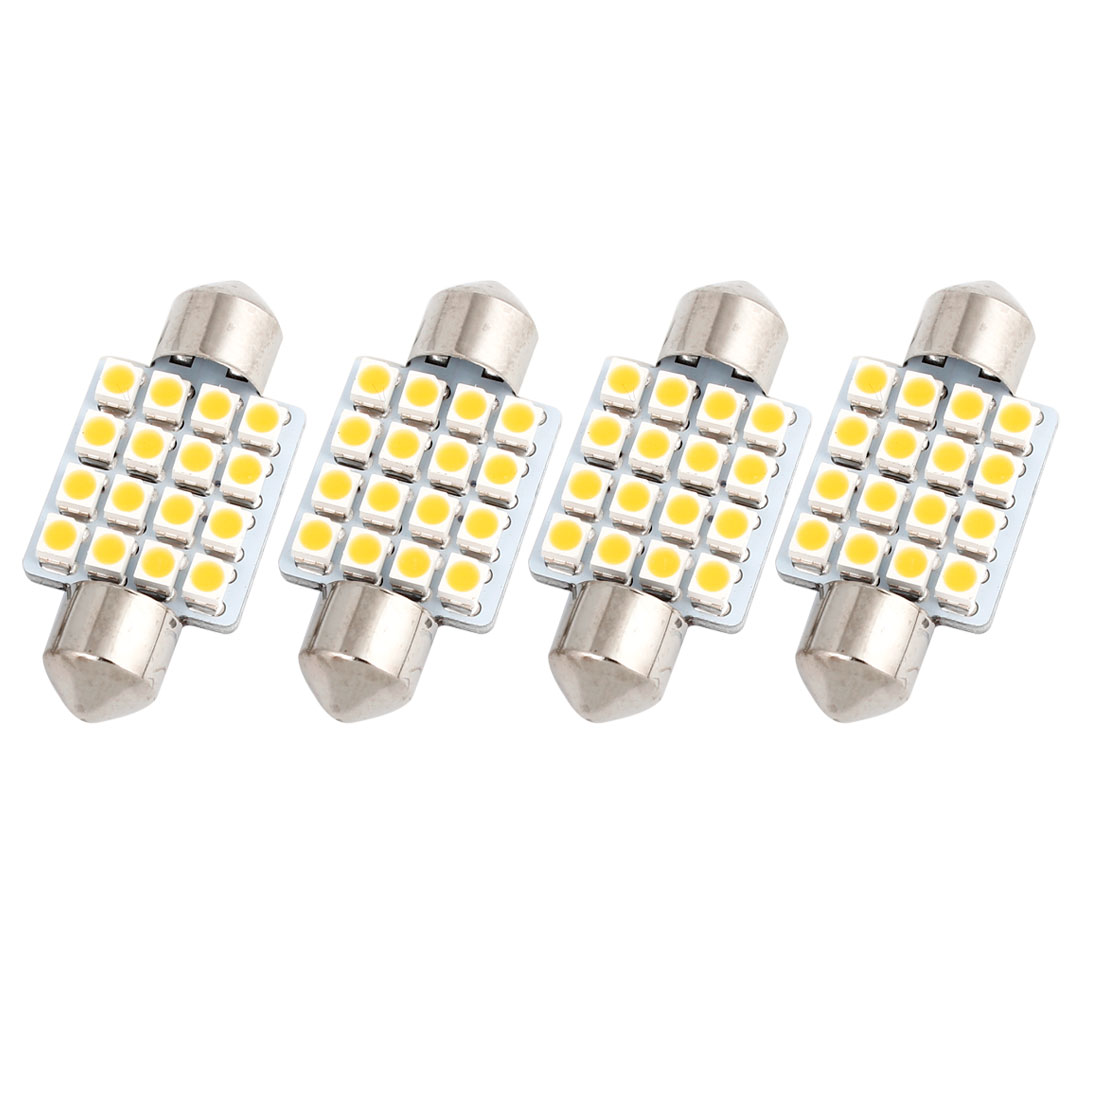 "4 Pcs 36mm 1.5"" 16LED 1210 SMD Warm White Festoon Dome Map Light DE3021 Internal"